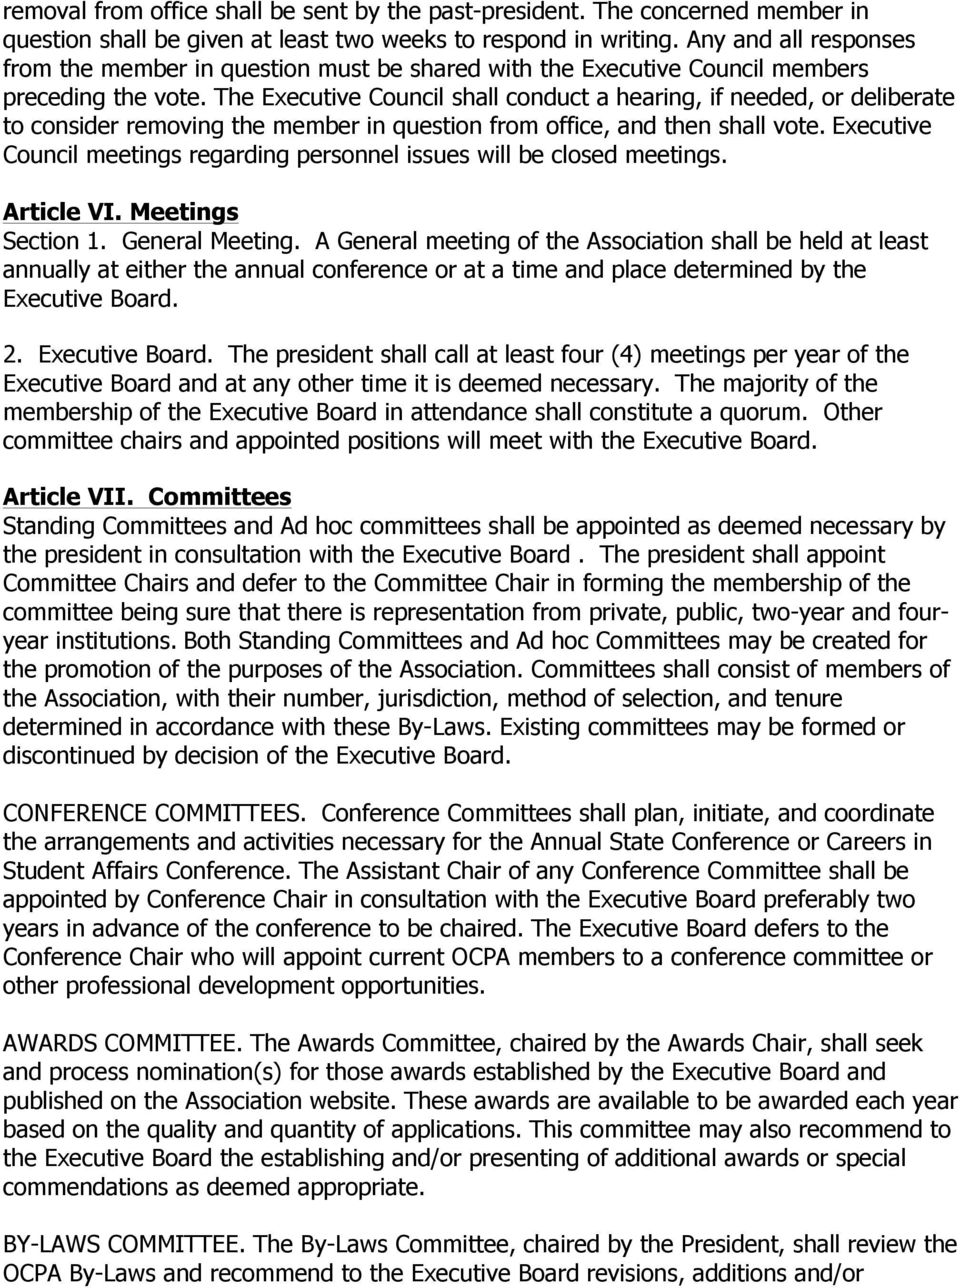 The Executive Council shall conduct a hearing, if needed, or deliberate to consider removing the member in question from office, and then shall vote.